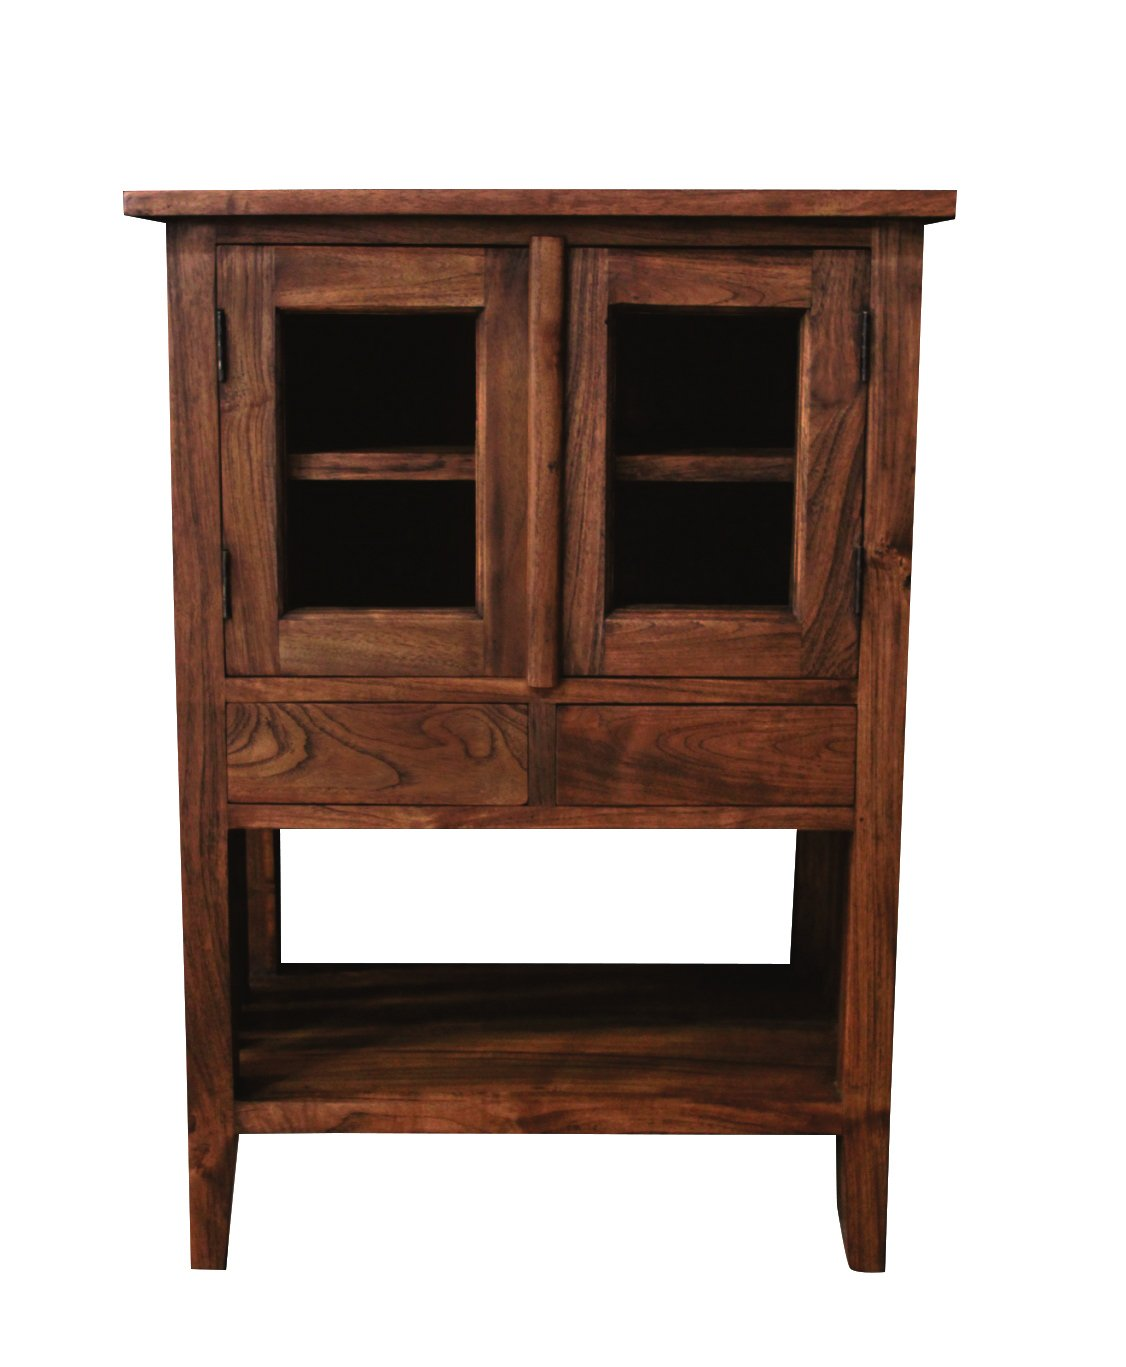 NES Furniture zma10146 Nathan Cabinet